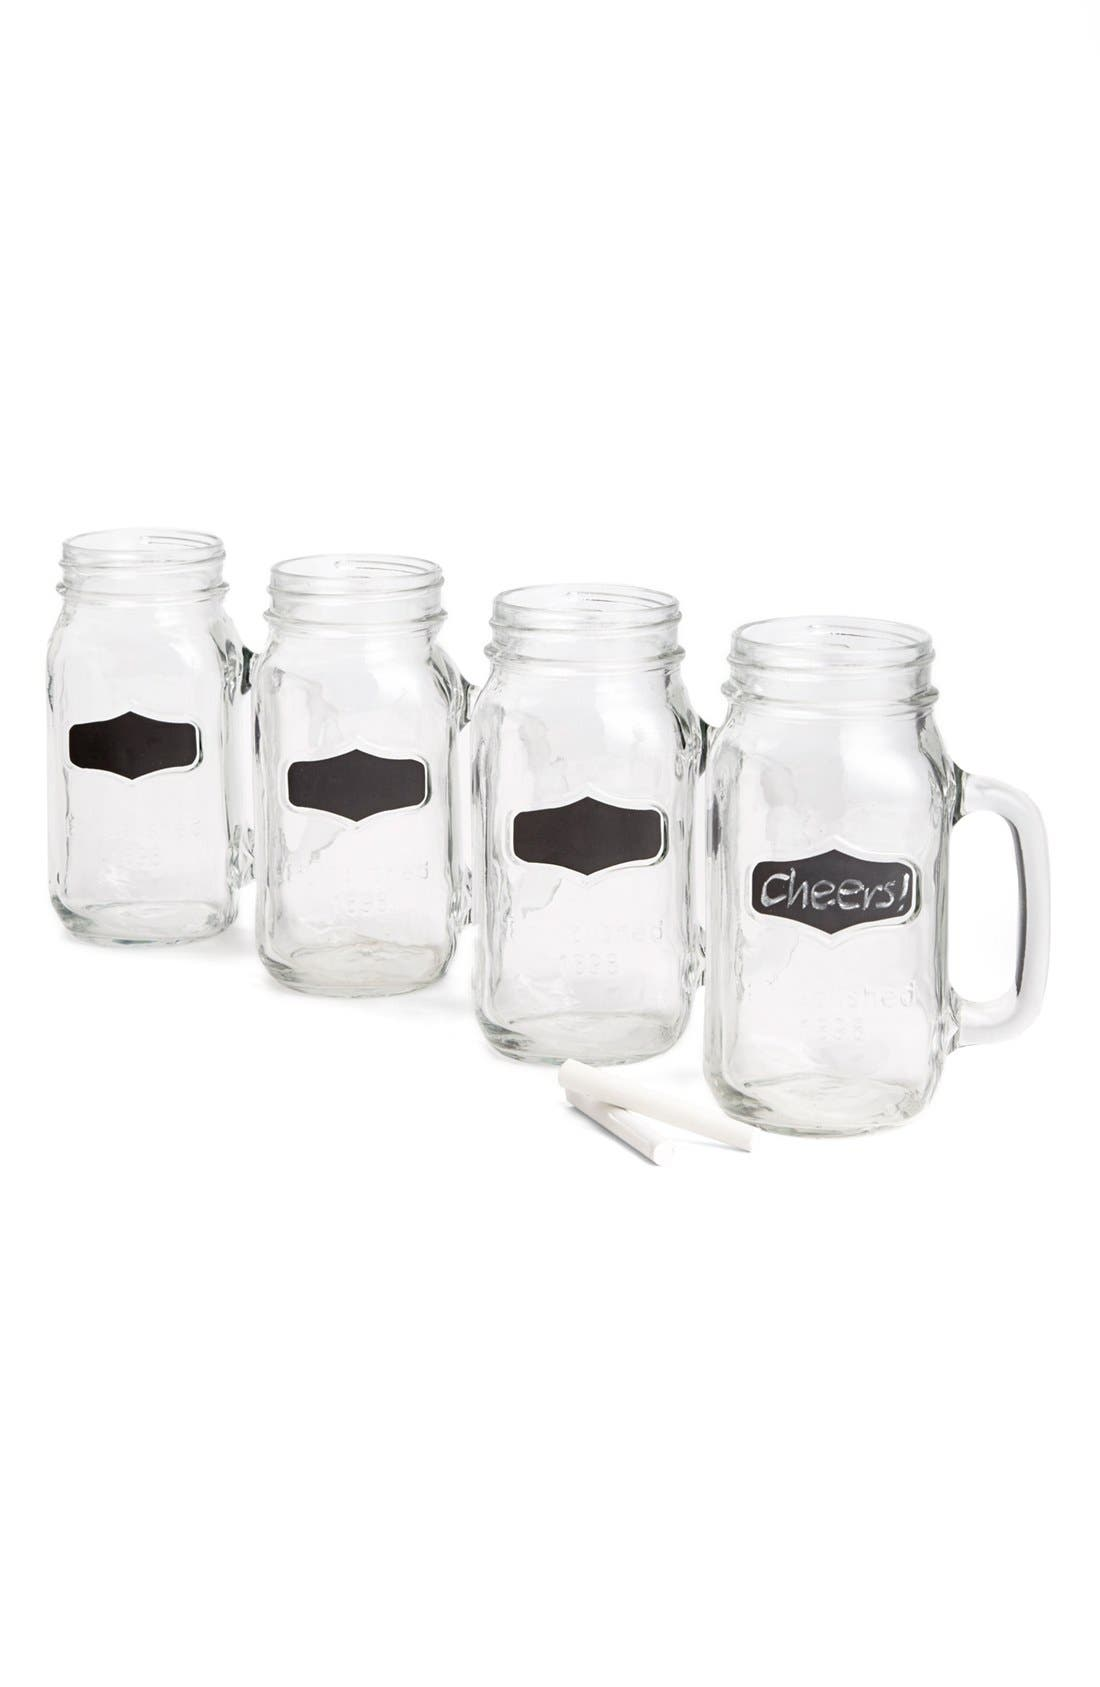 Alternate Image 1 Selected - Circle Glass 'Yorkshire' Mason Jar Mugs (Set of 4)